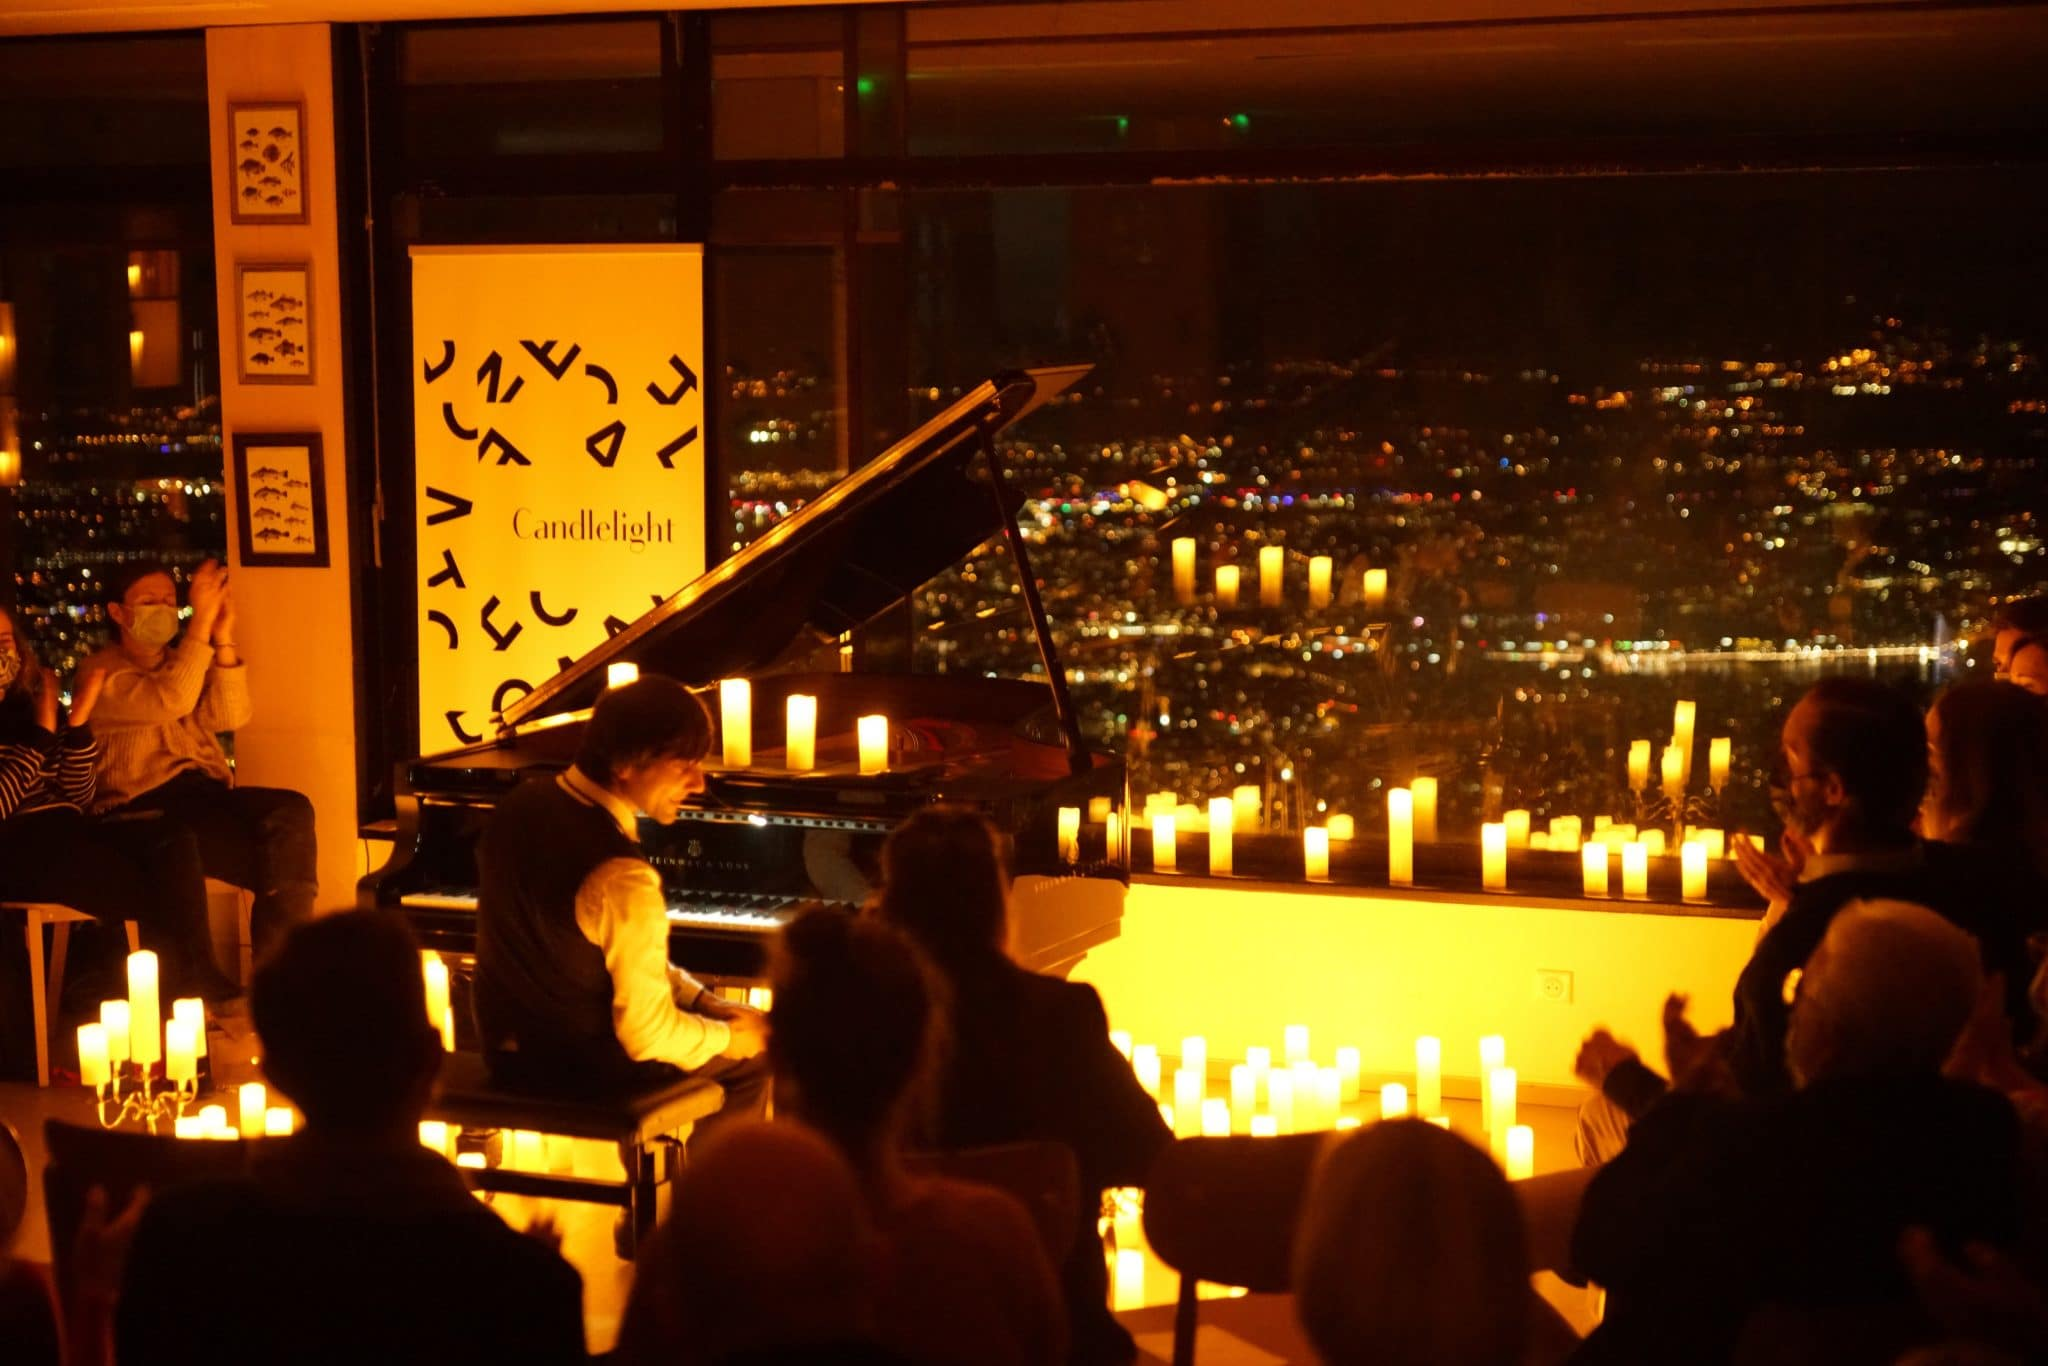 candlelight geneve salève piano vue nuit bougies